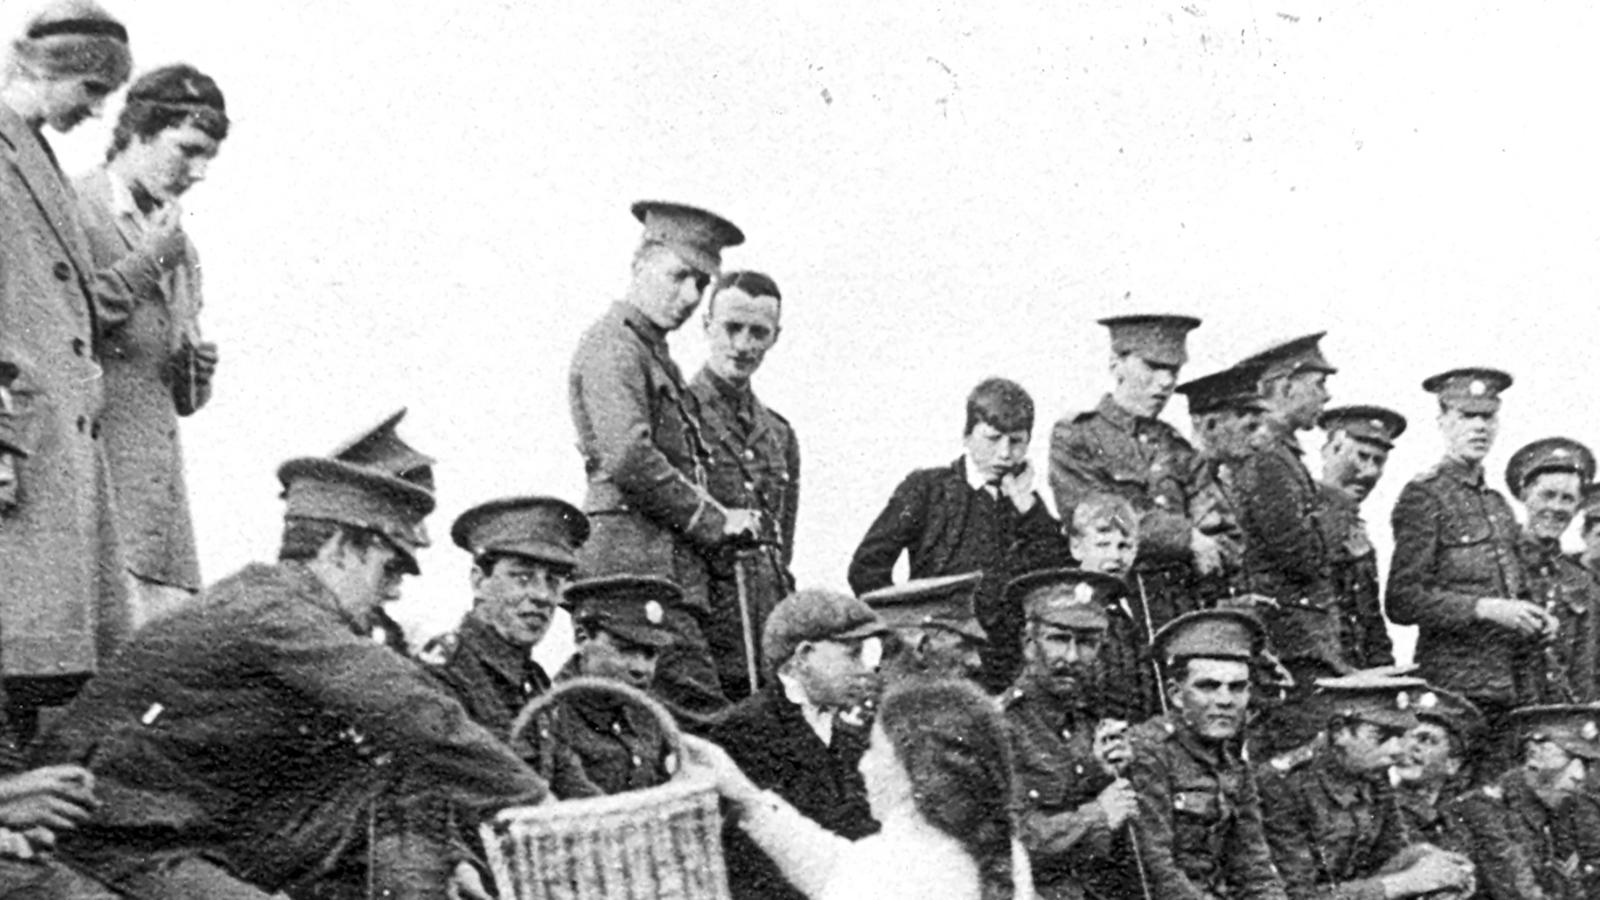 WW1 Soldiers on Cricket Pitch